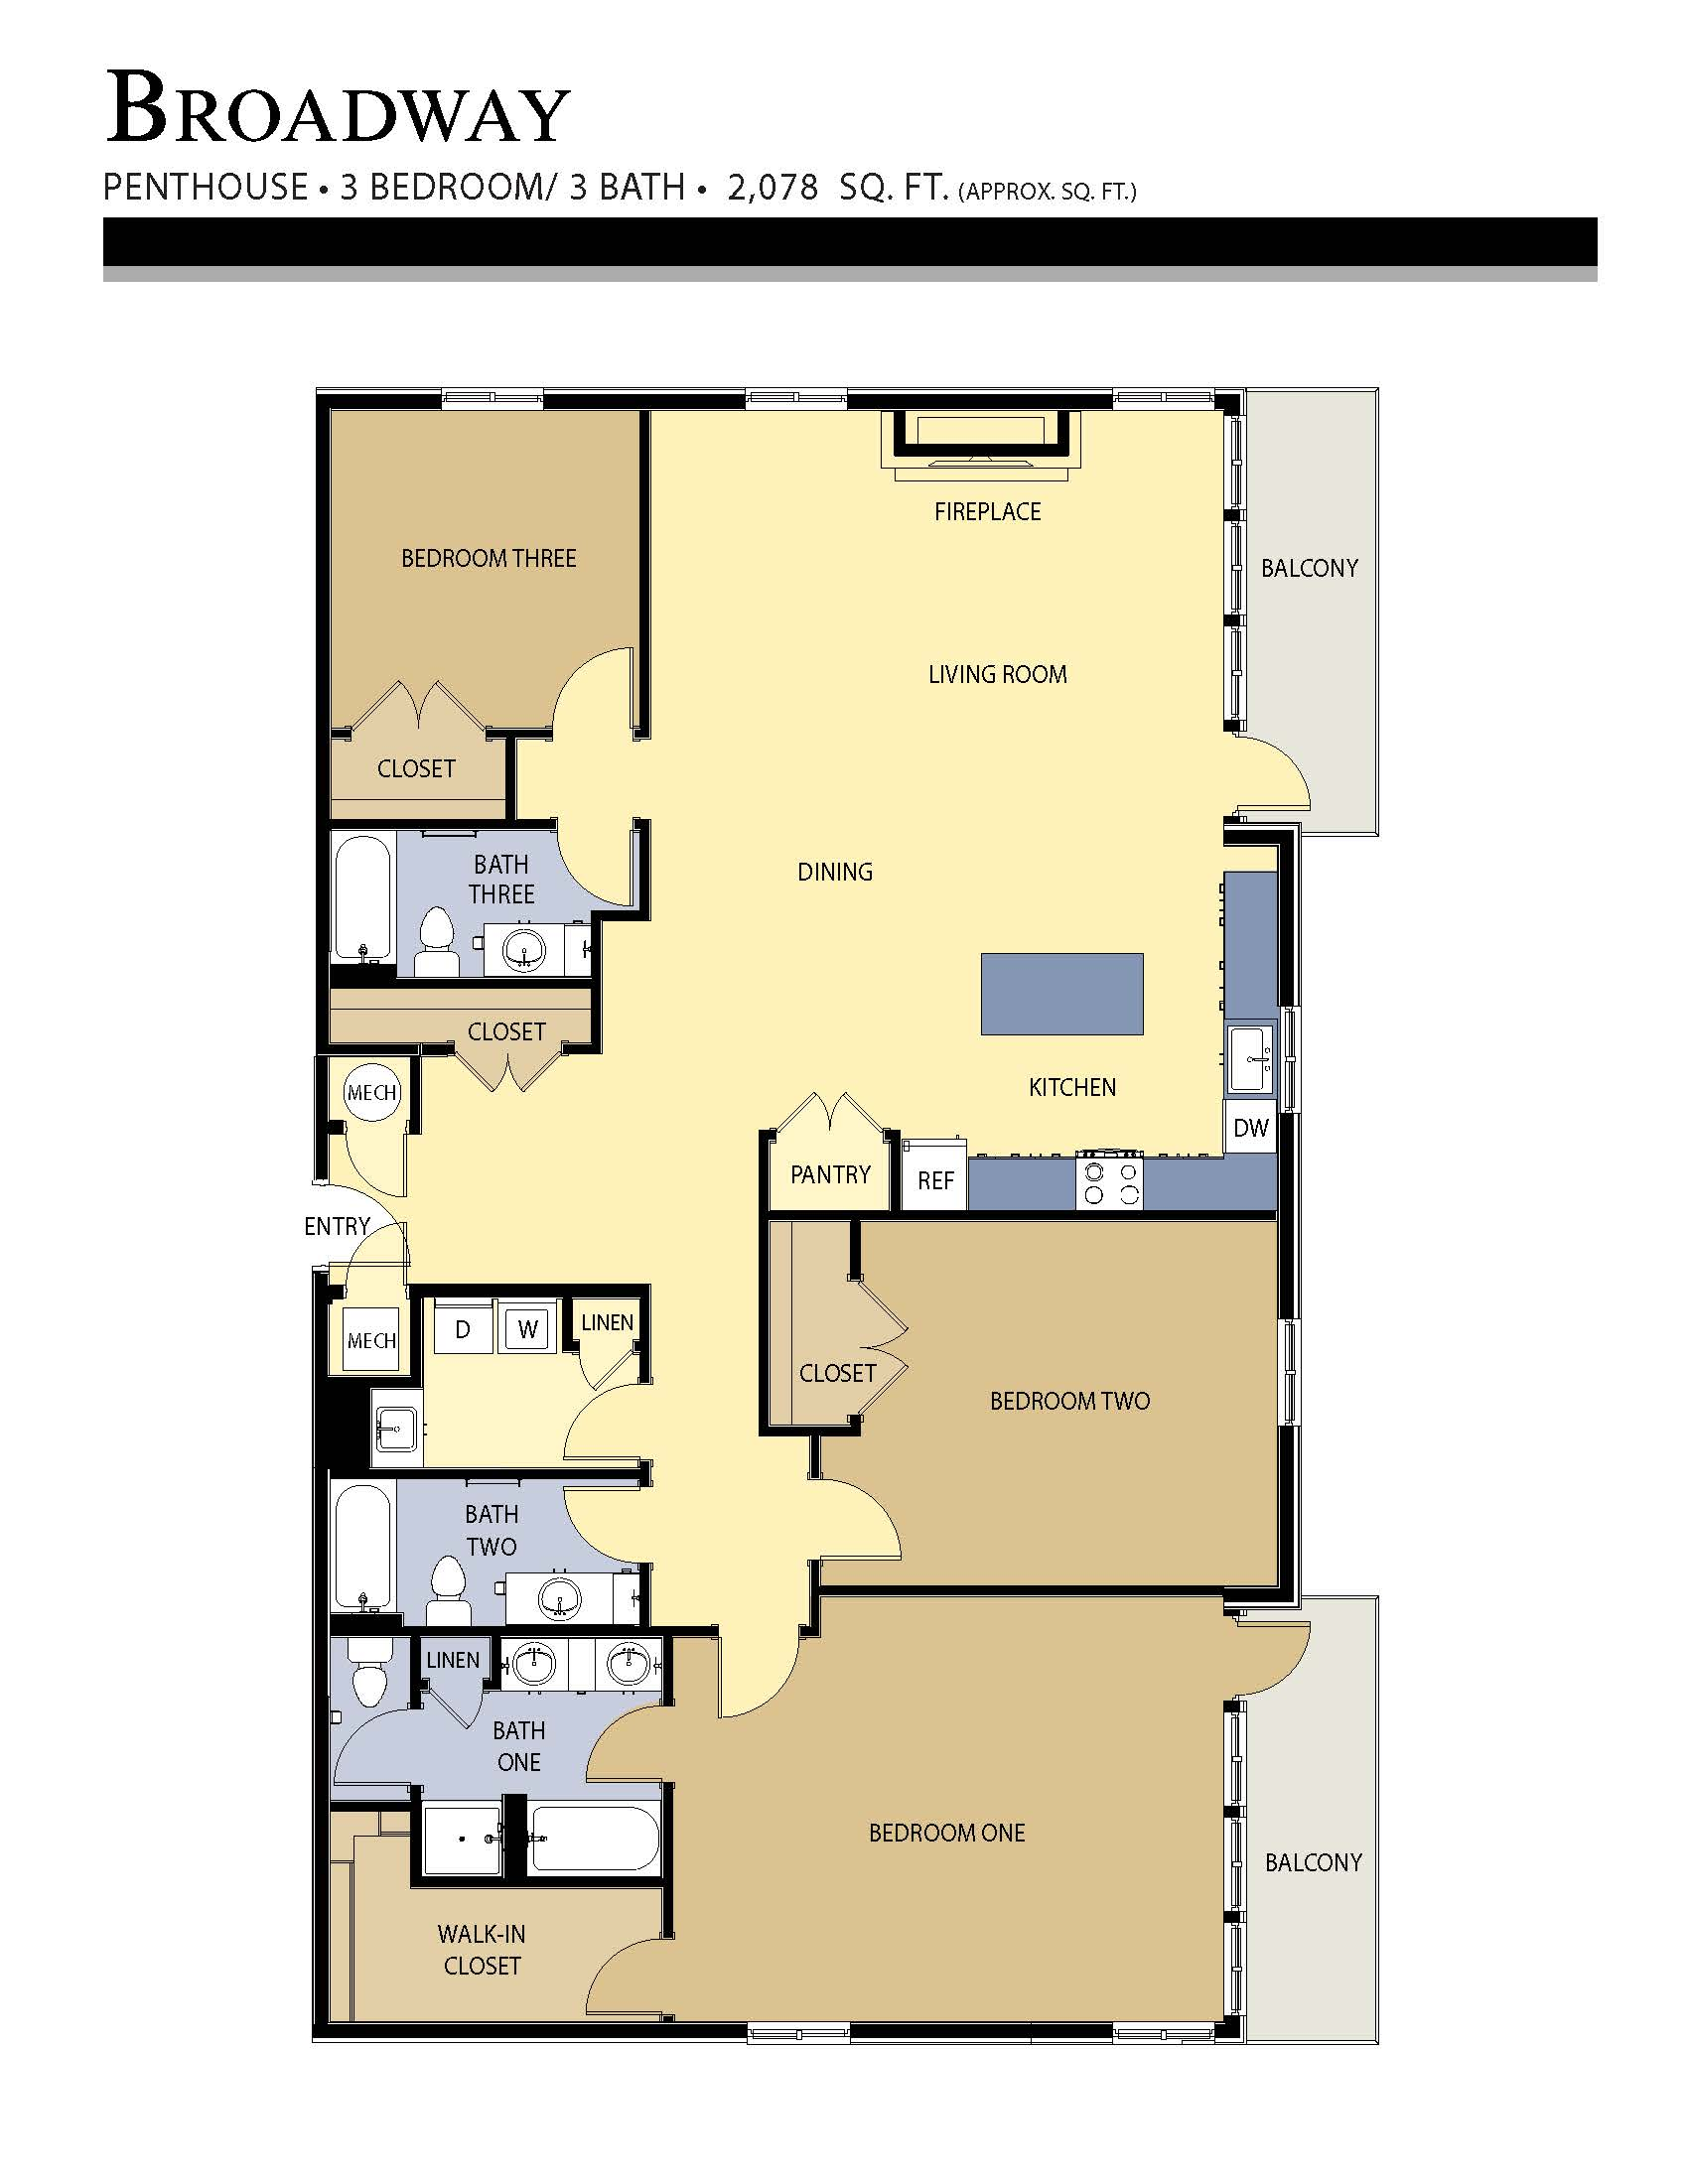 Broadway floor plan - 3 Bed / 3 Bath (2,078 Sq Ft)